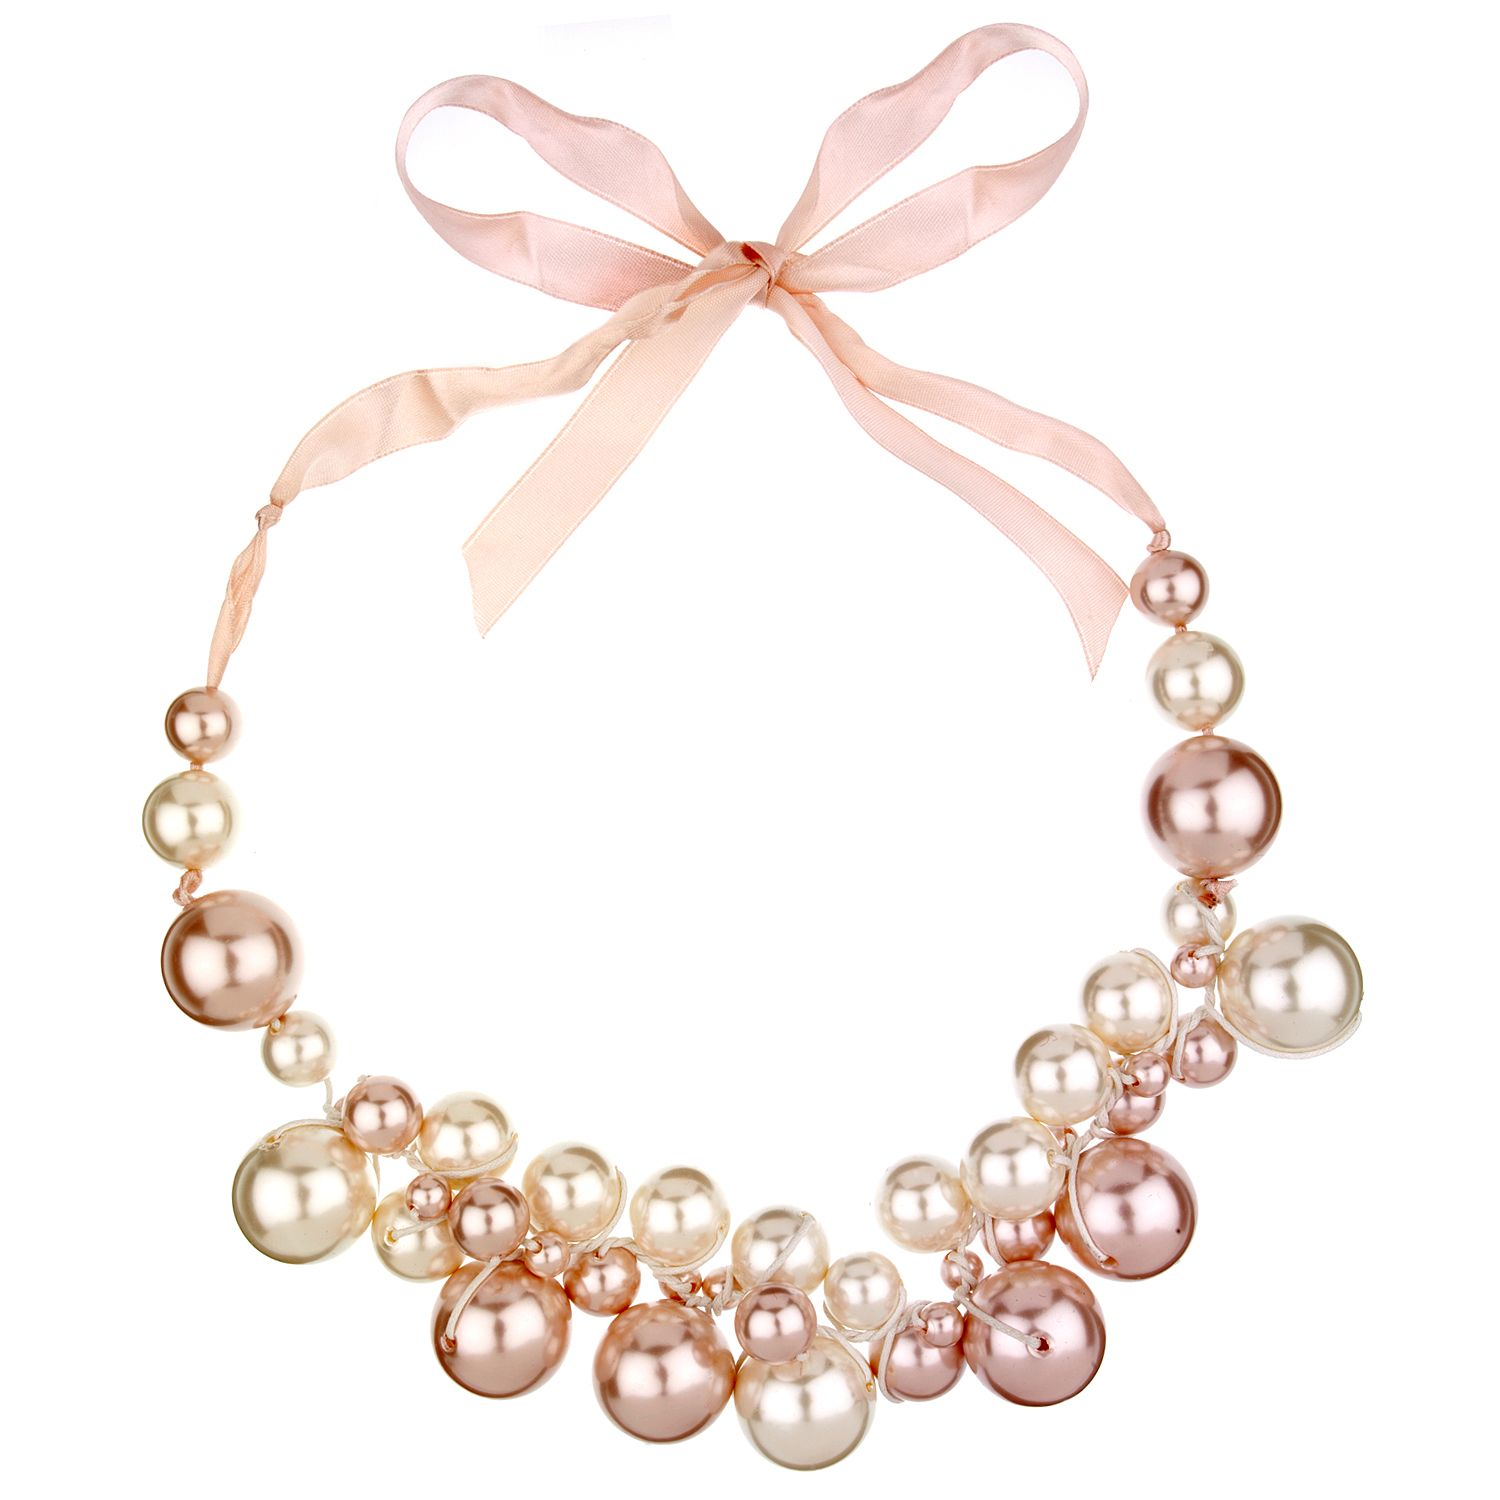 Pearl ribbon necklace for Ribbon tie necklace jewelry